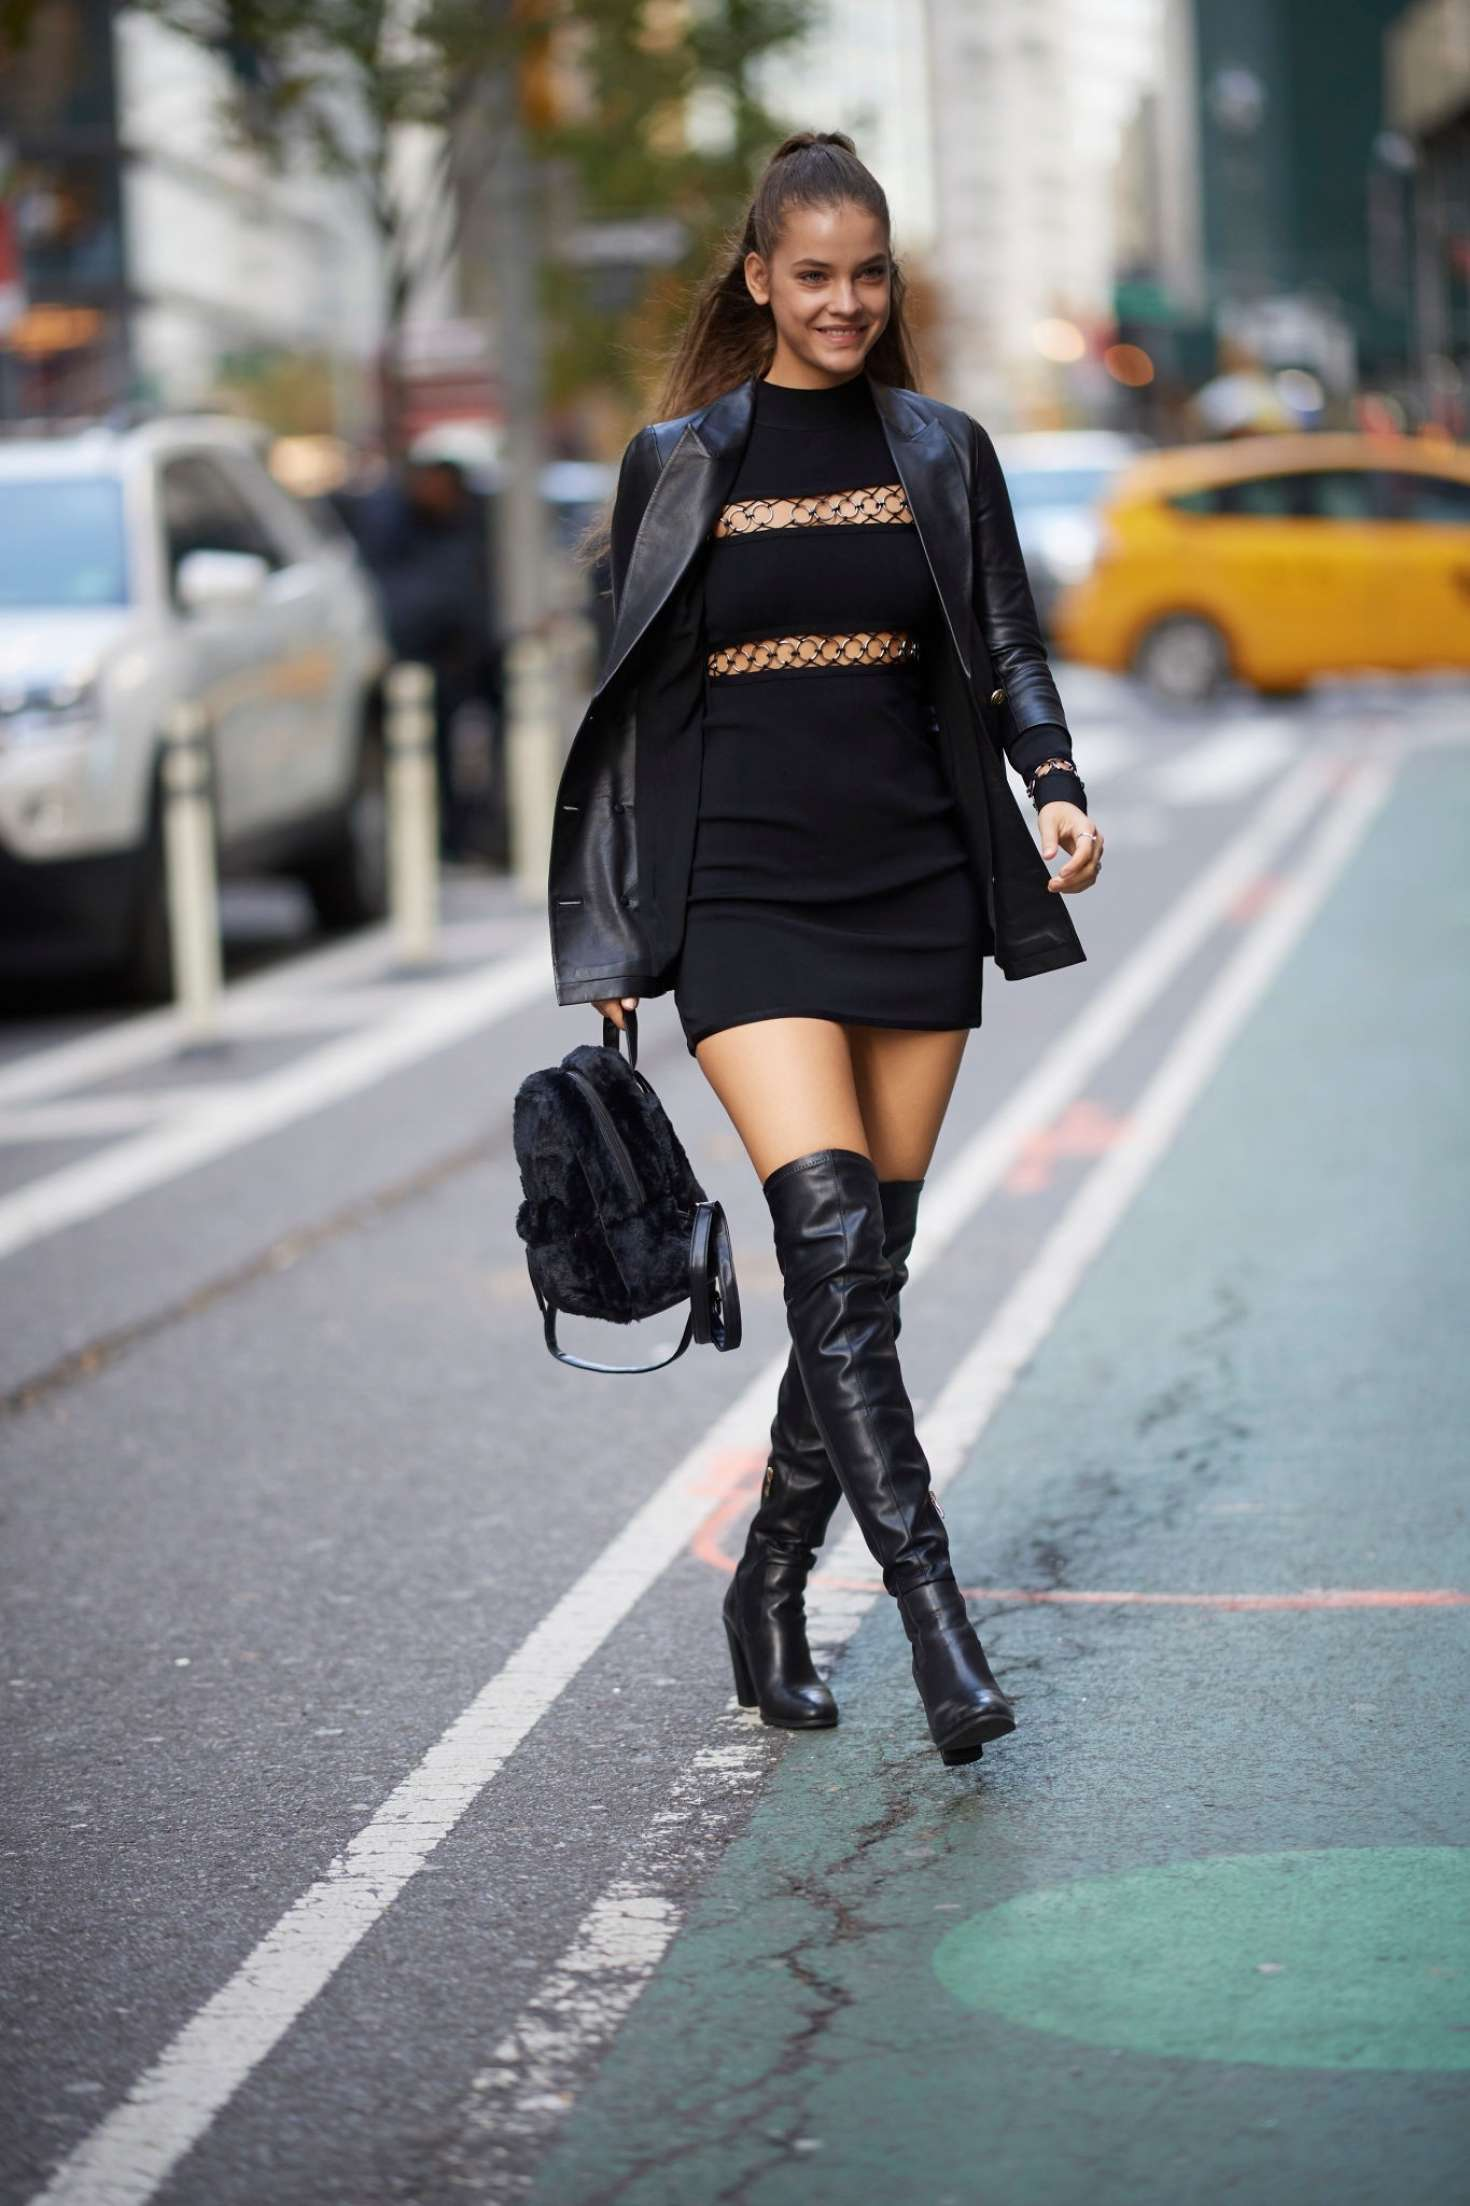 Barbara Palvin - Arriving at the Victoria's Secret offices in New York